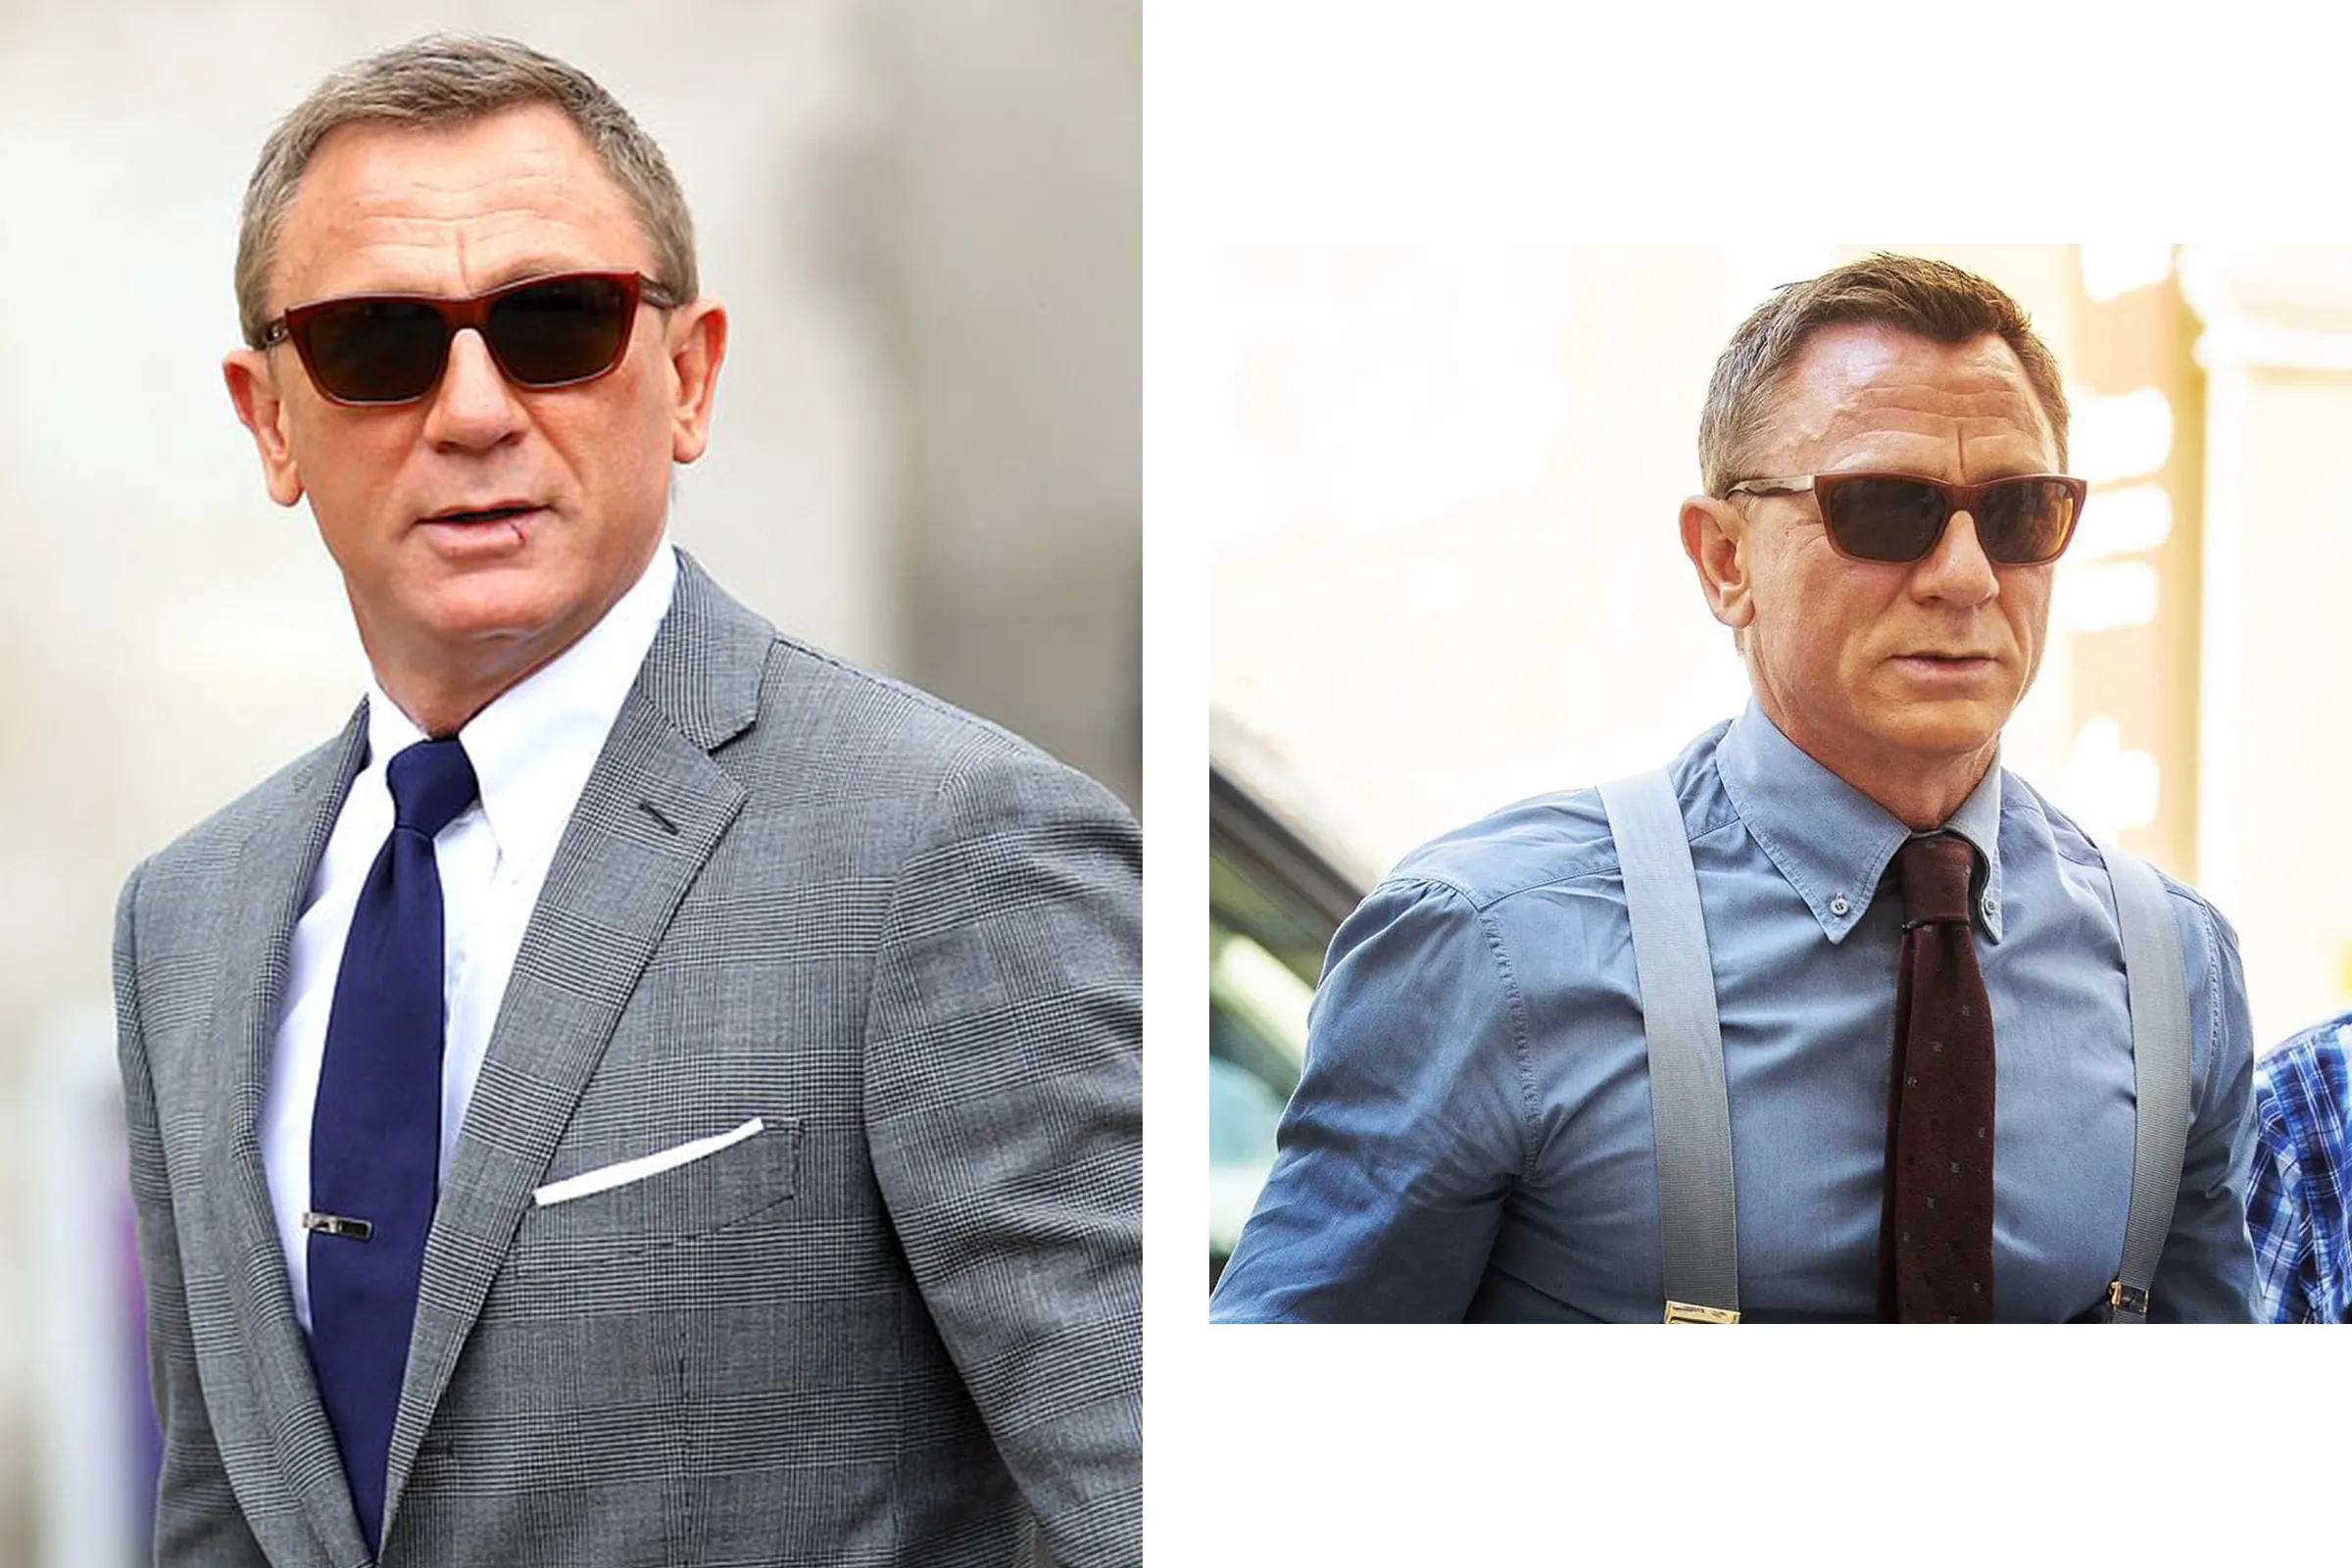 James Bond no time to die sunglasses